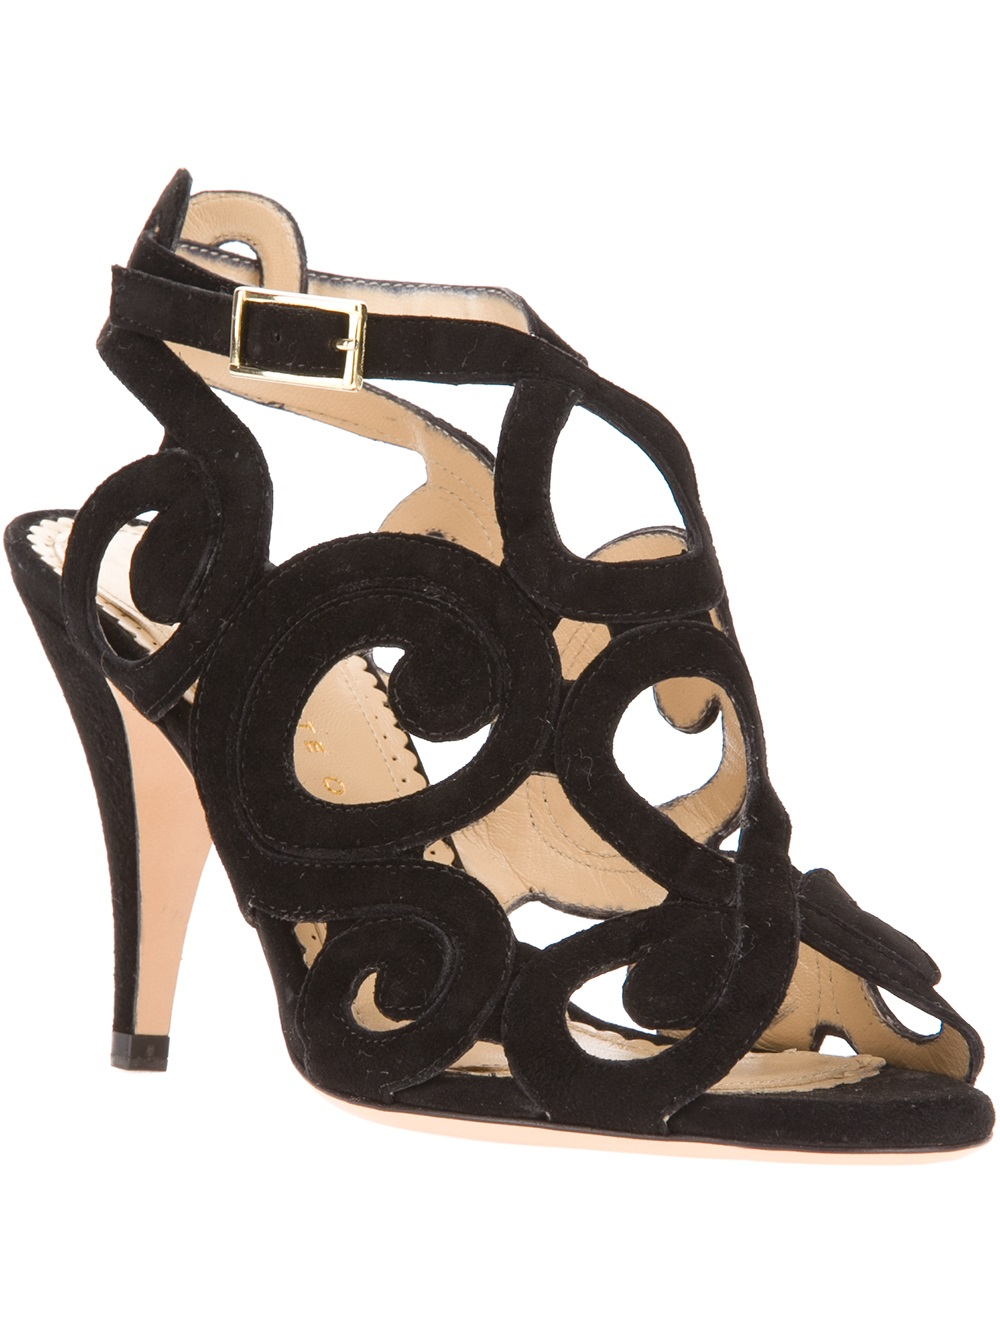 8e7fdabe1127 Lyst - Charlotte Olympia Coral Cutout Sandal in Black